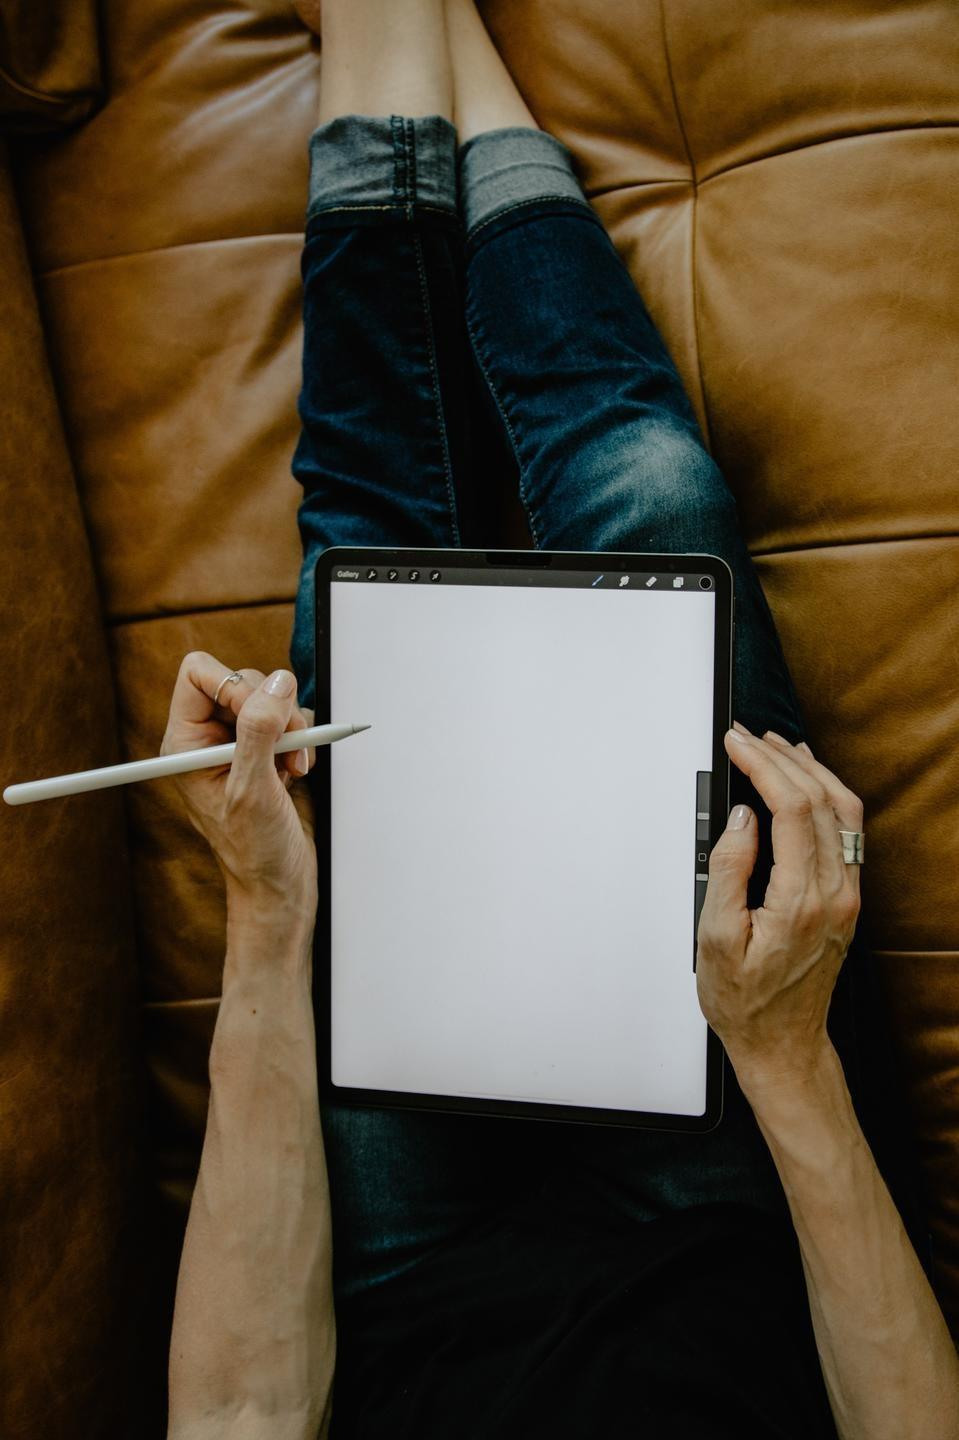 Journal writing on tablet